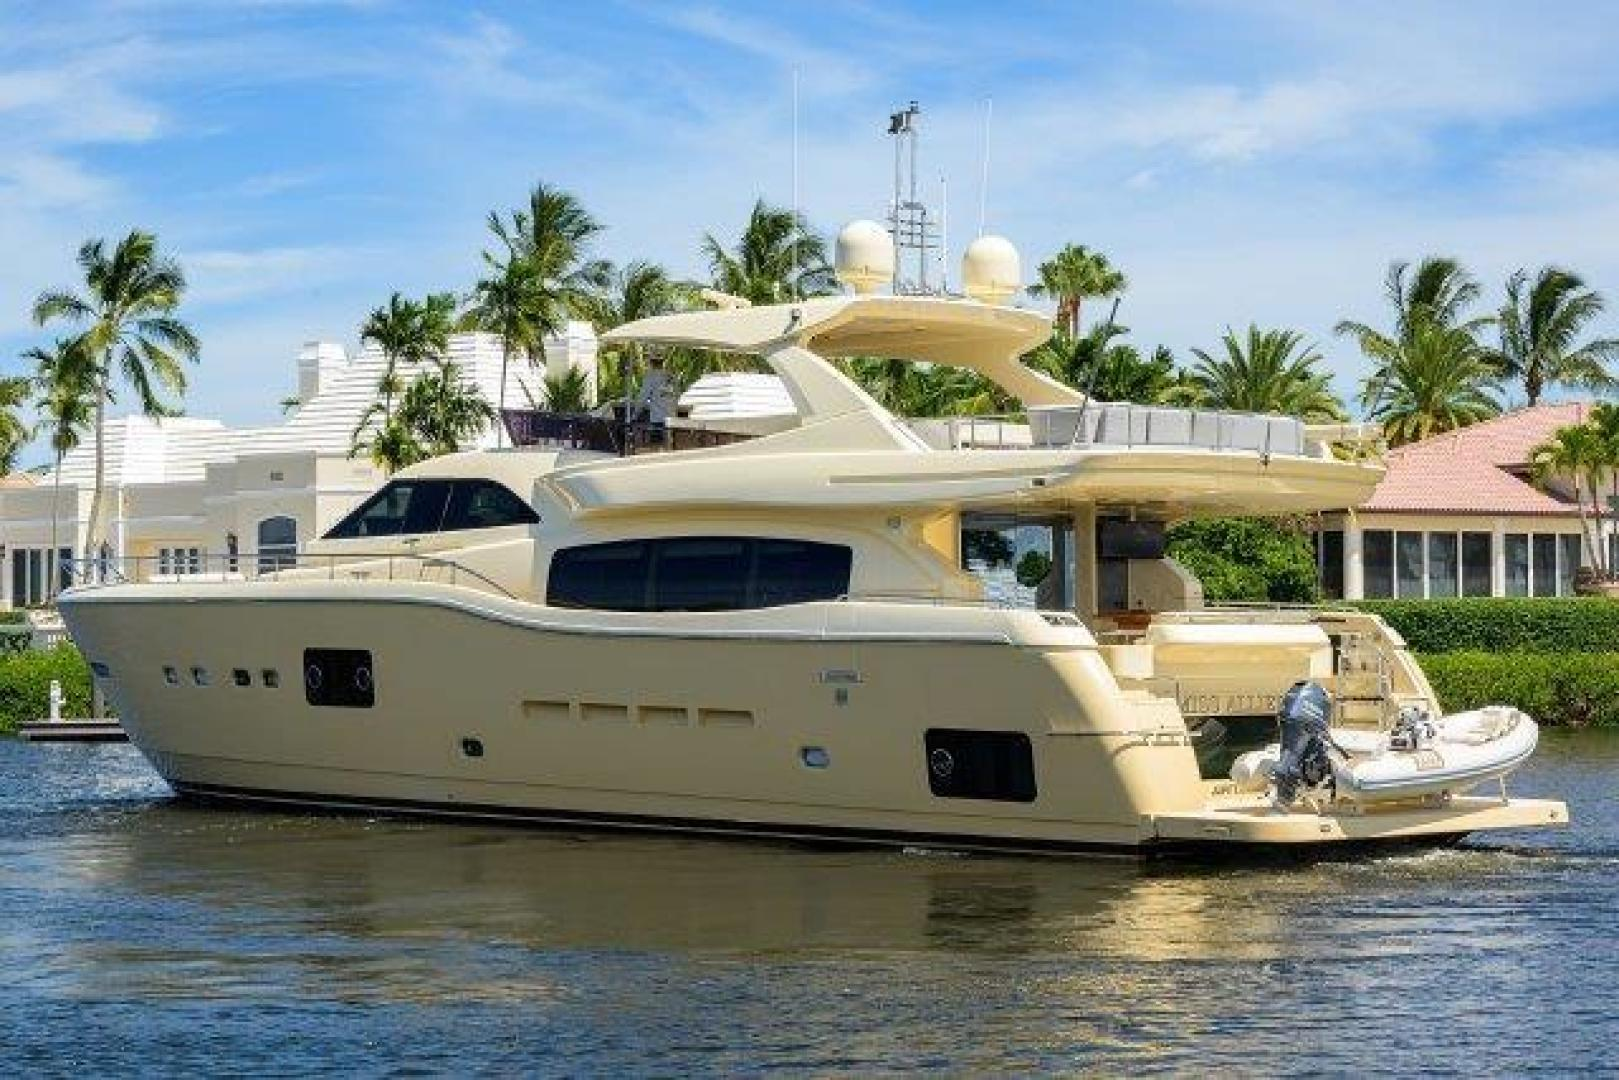 Ferretti Yachts-Altura 840 2010-MISS ALLIED Jupiter-Florida-United States-MISS ALLIED-1518374 | Thumbnail